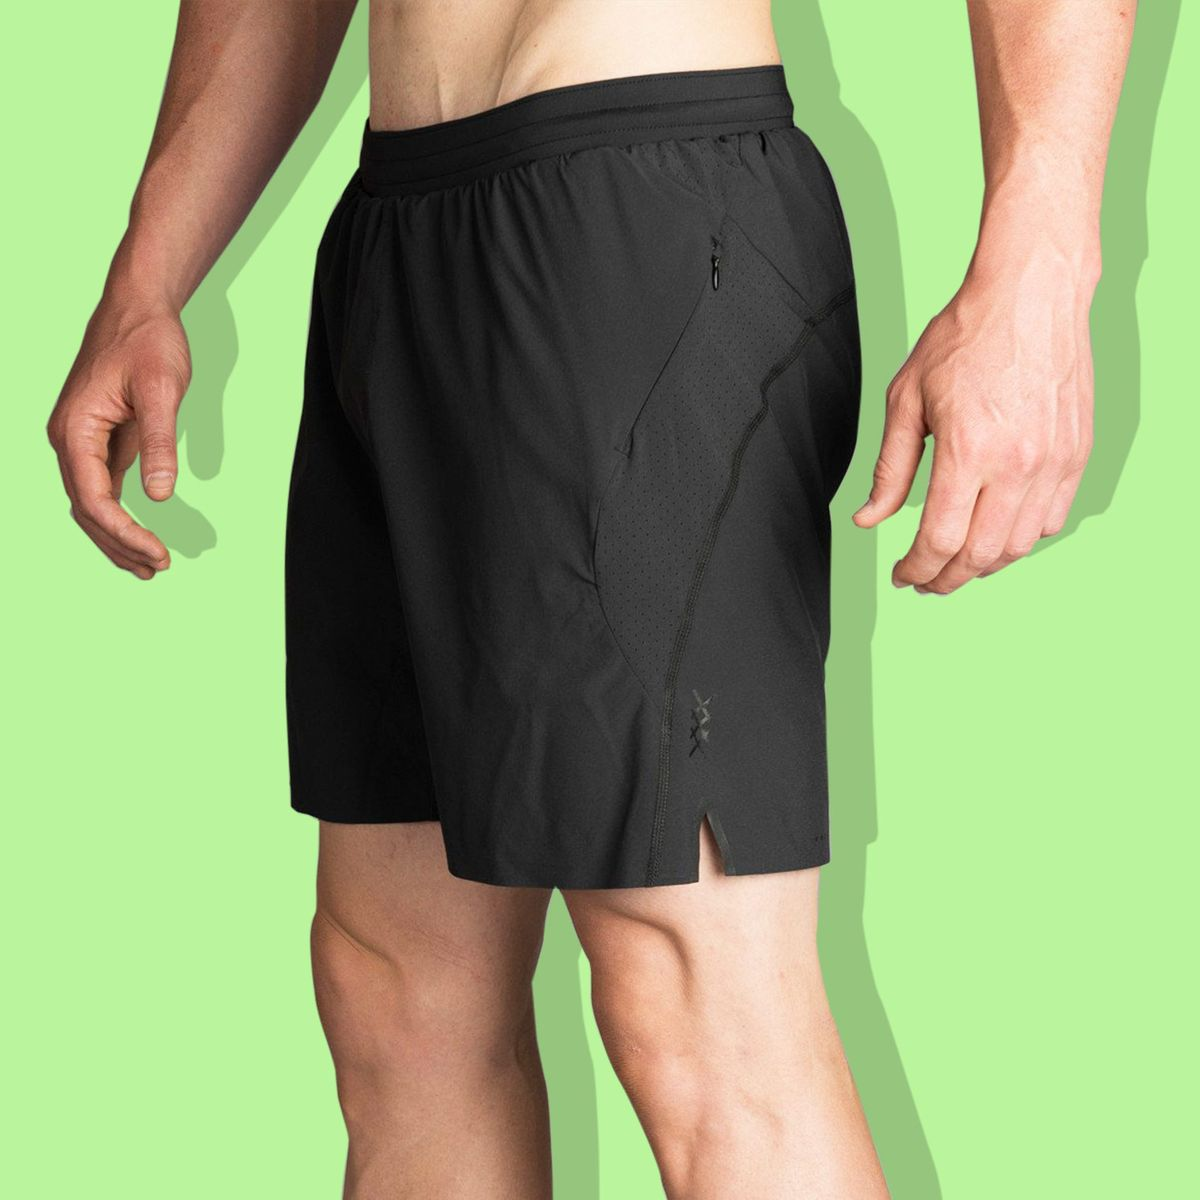 3e68c6a8b Best Men's Running Shorts With Liner 2017 Review: Rhone